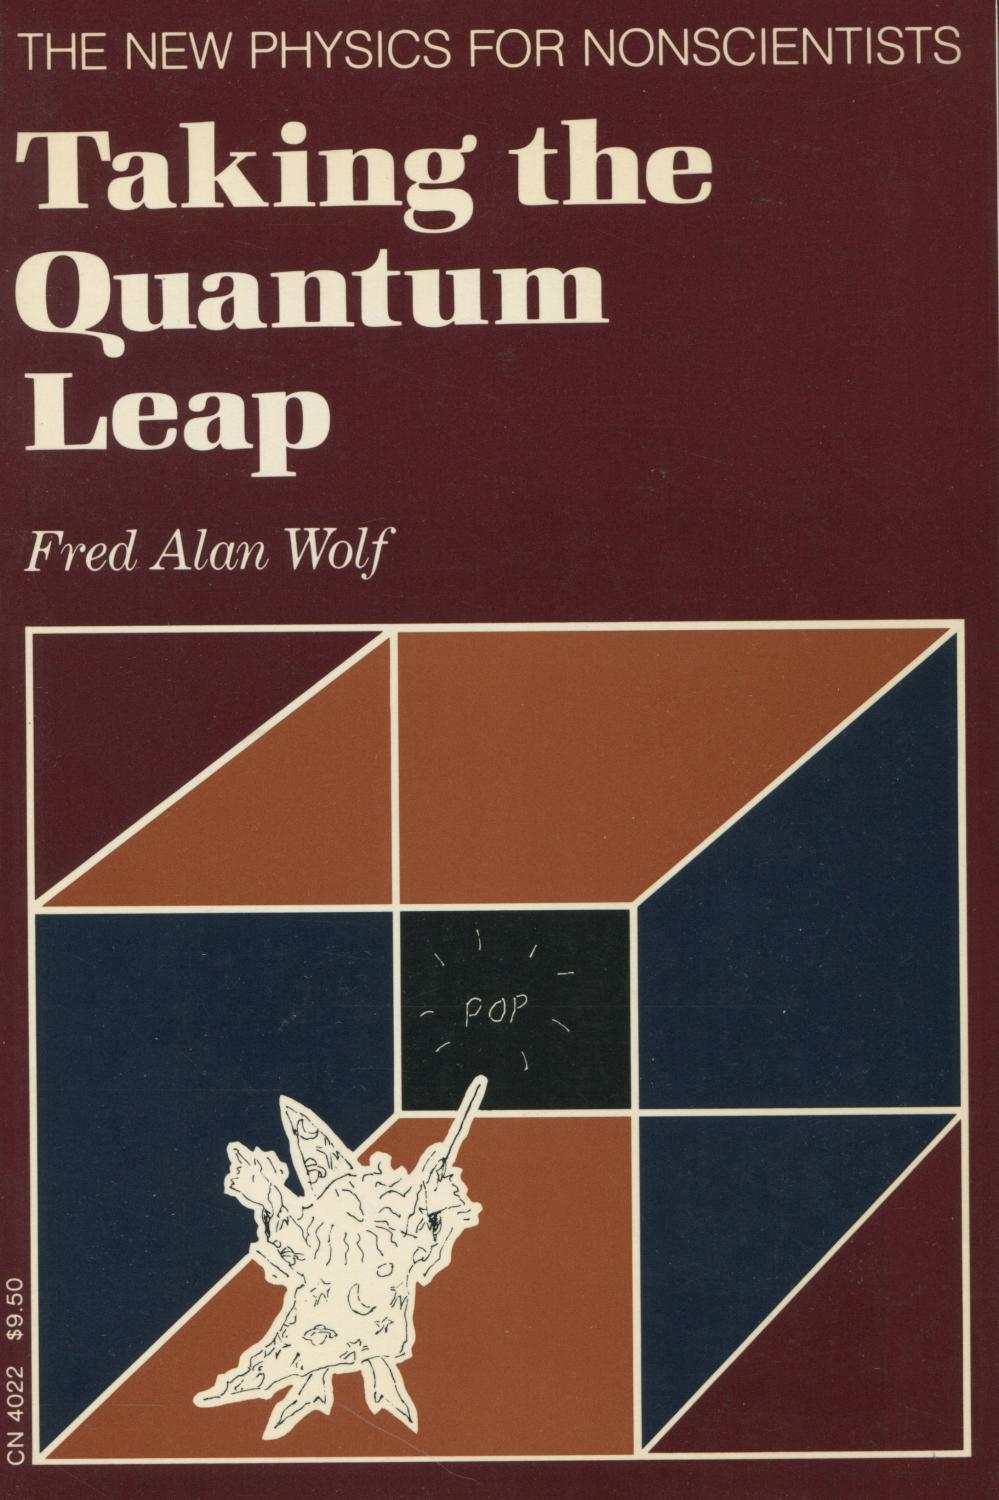 cover of Taking the Quantum Leap by Fred Alan Wolf